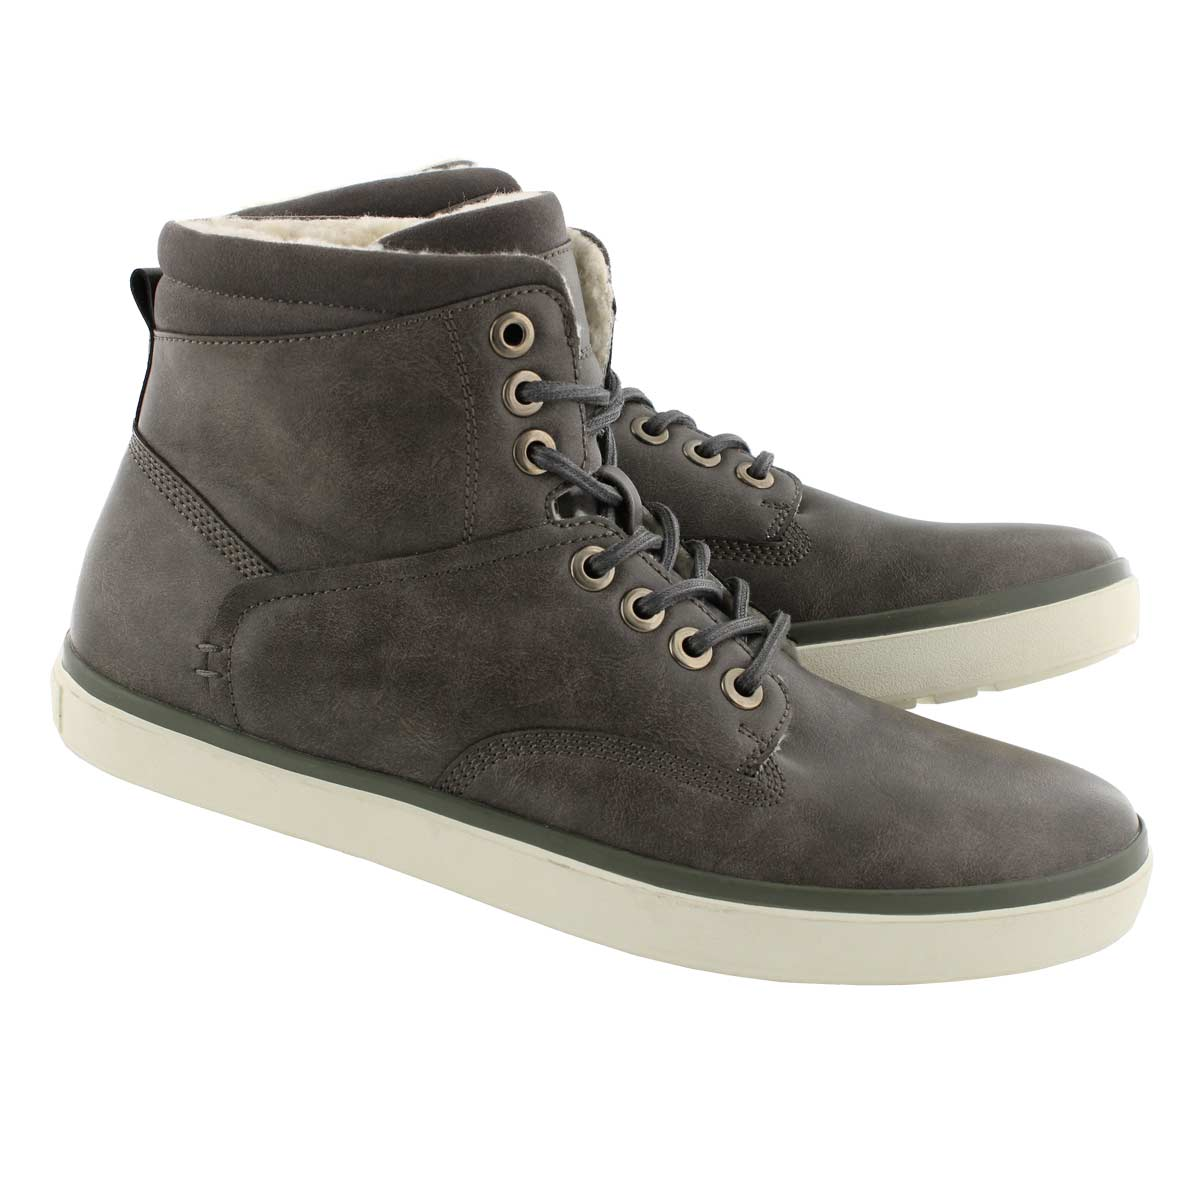 Mns Roadster grey lace up ankle boot